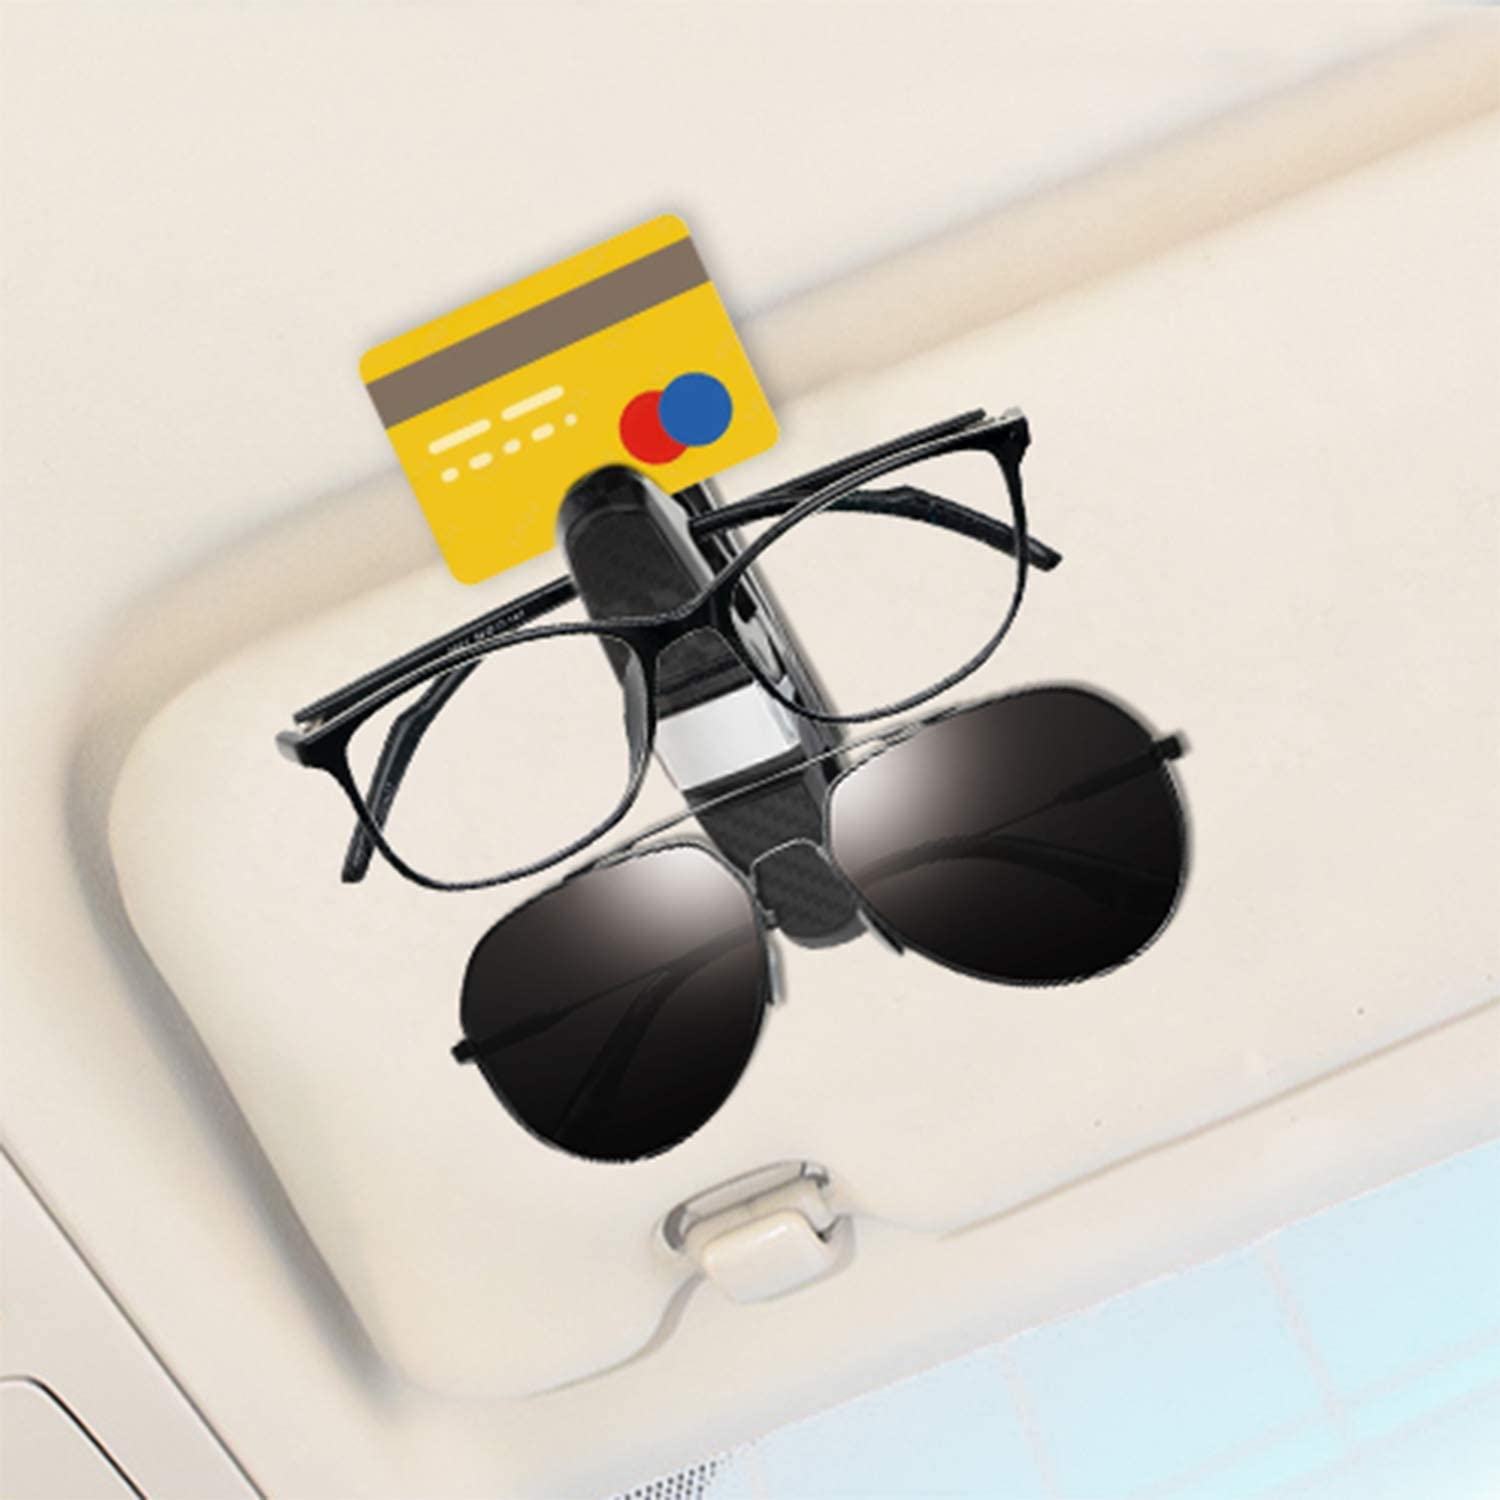 Gydandir 2 Pack Glasses Holders for Car Sun Visor Along with 2 PCS Glasses Cleaning Cloth Sunglasses Eyeglasses with Clips for Tickets and Cards